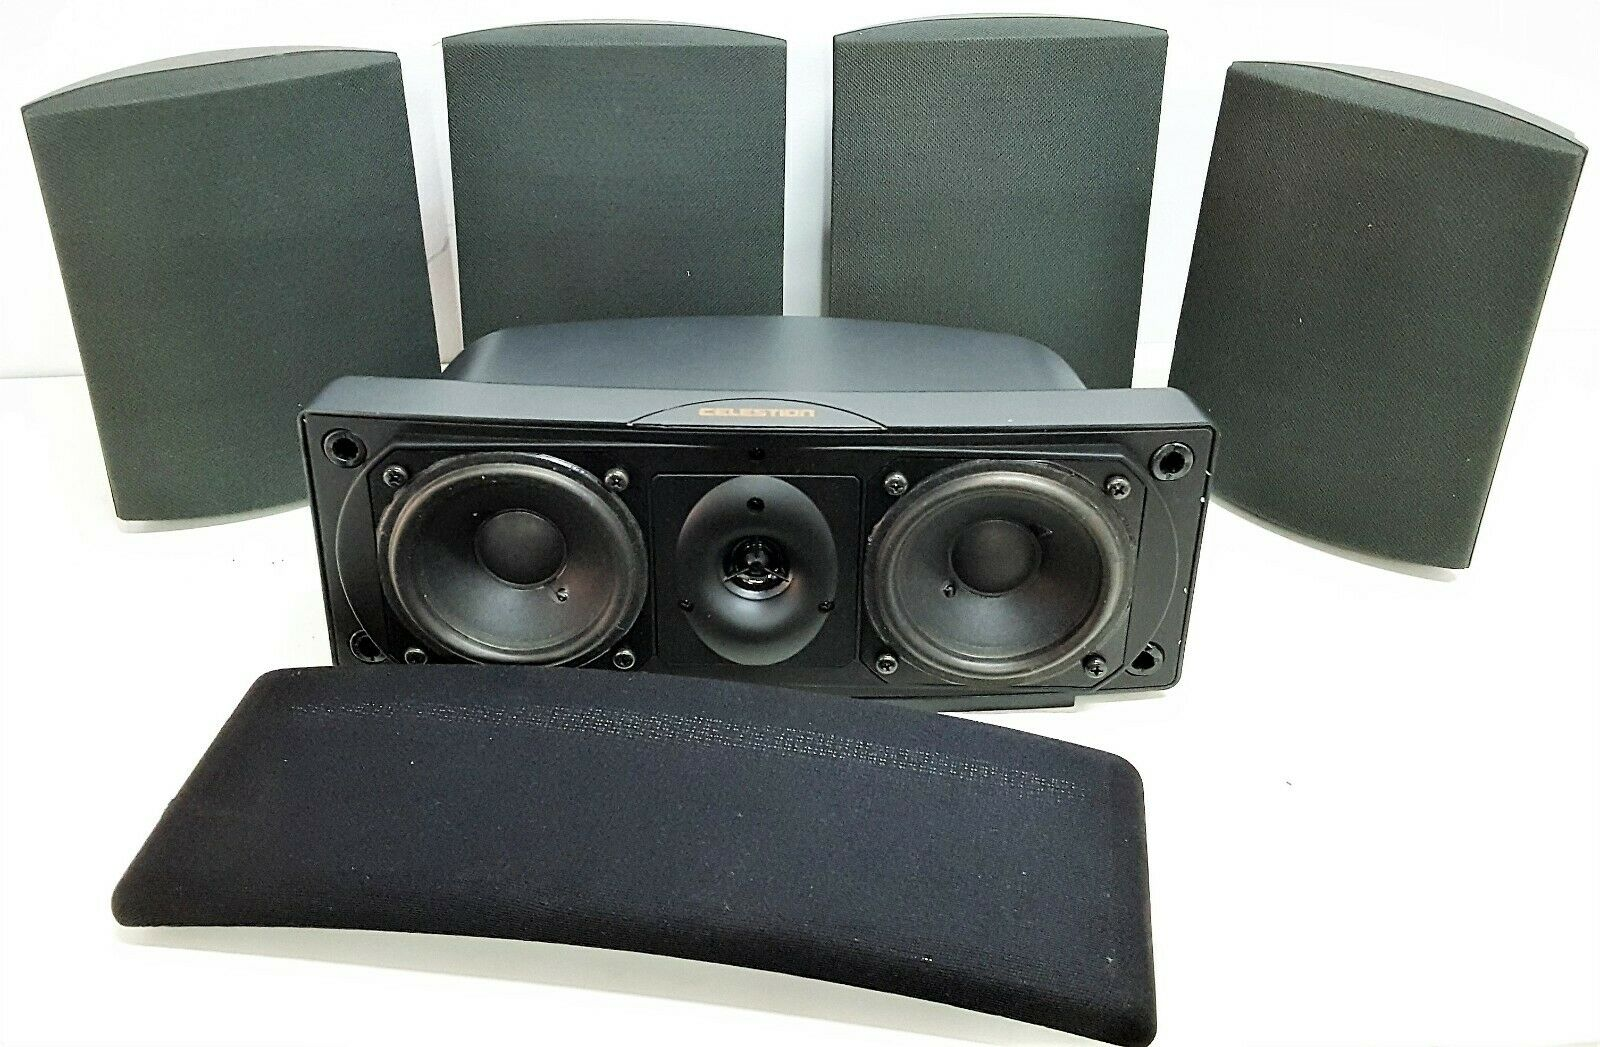 5 Celestion HTiB Effects Home Theater System Surround Sound, Wall or BookShelf